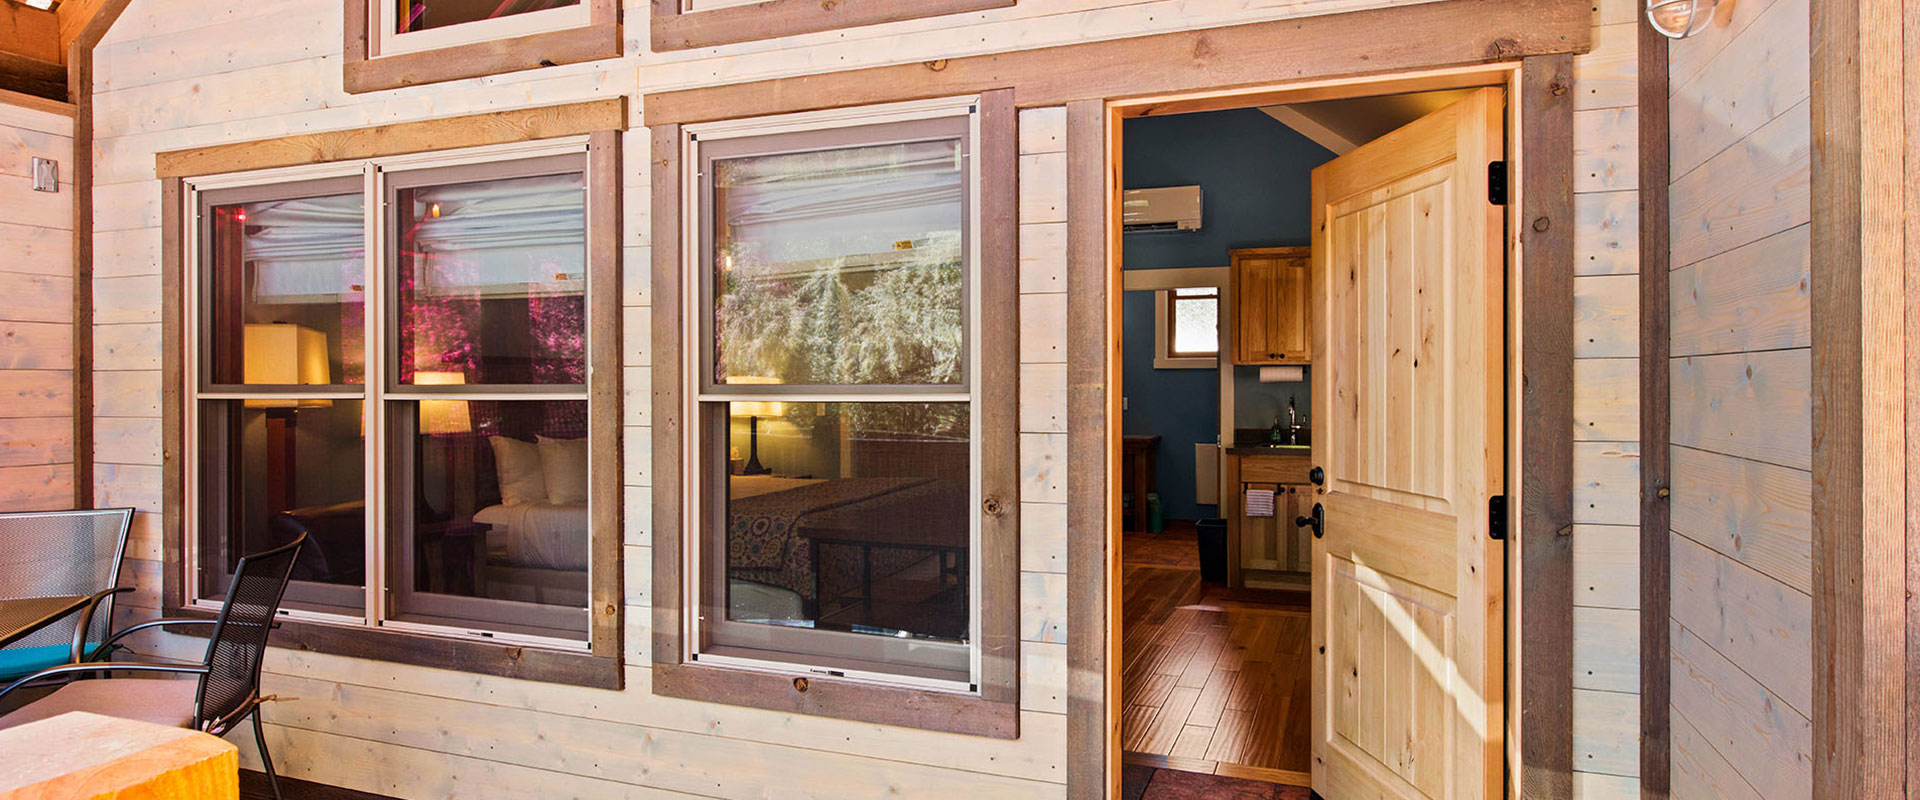 Balcony view from a unit at Moab Springs Ranch overlooking green and plum colored trees, the corrugated roofs of neighboring units and towering sandcliffs in the background.